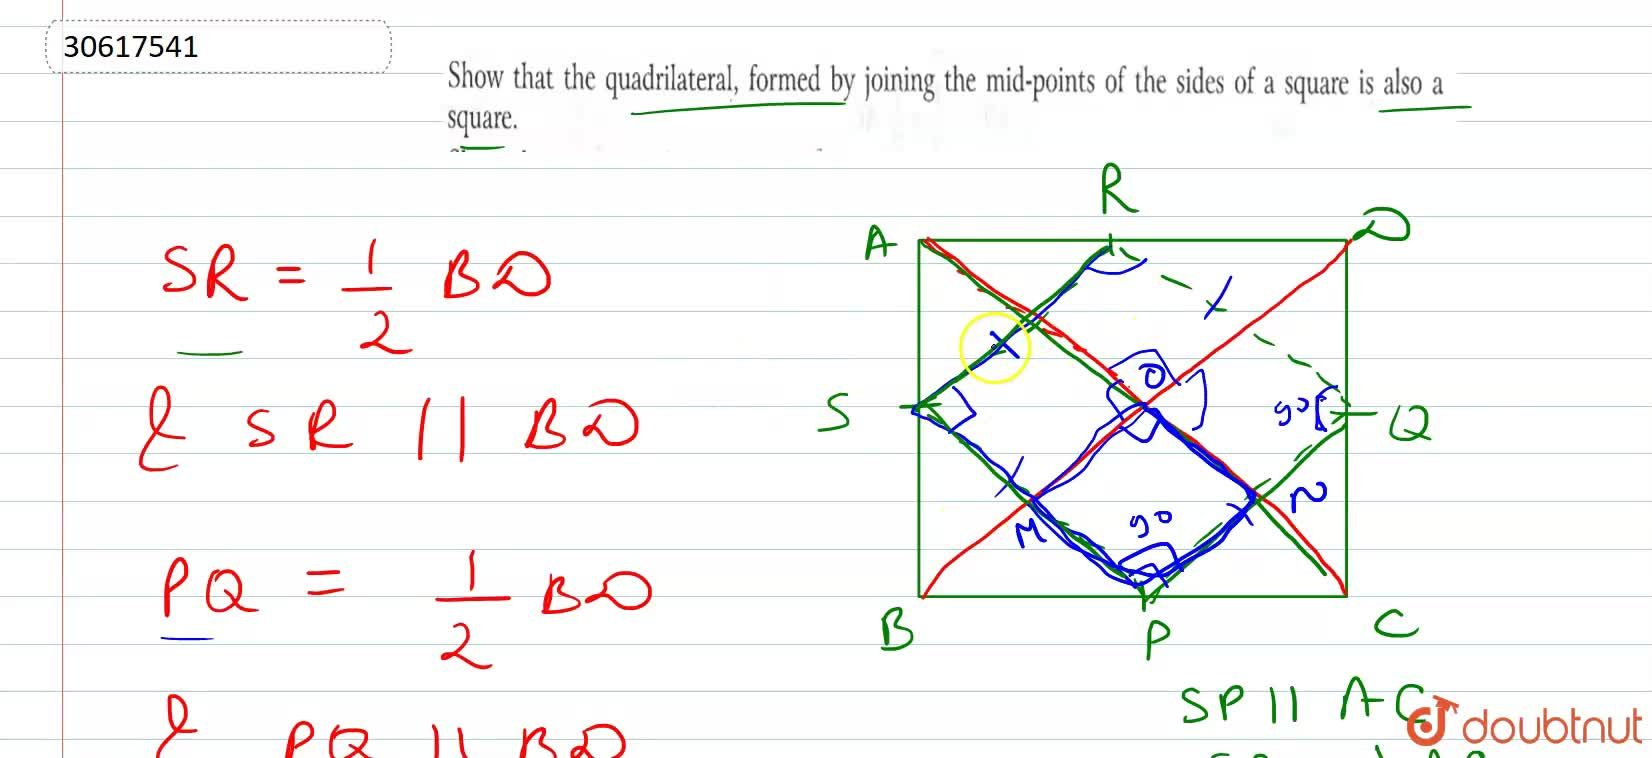 Solution for Show that the quadrilateral, formed by joining the